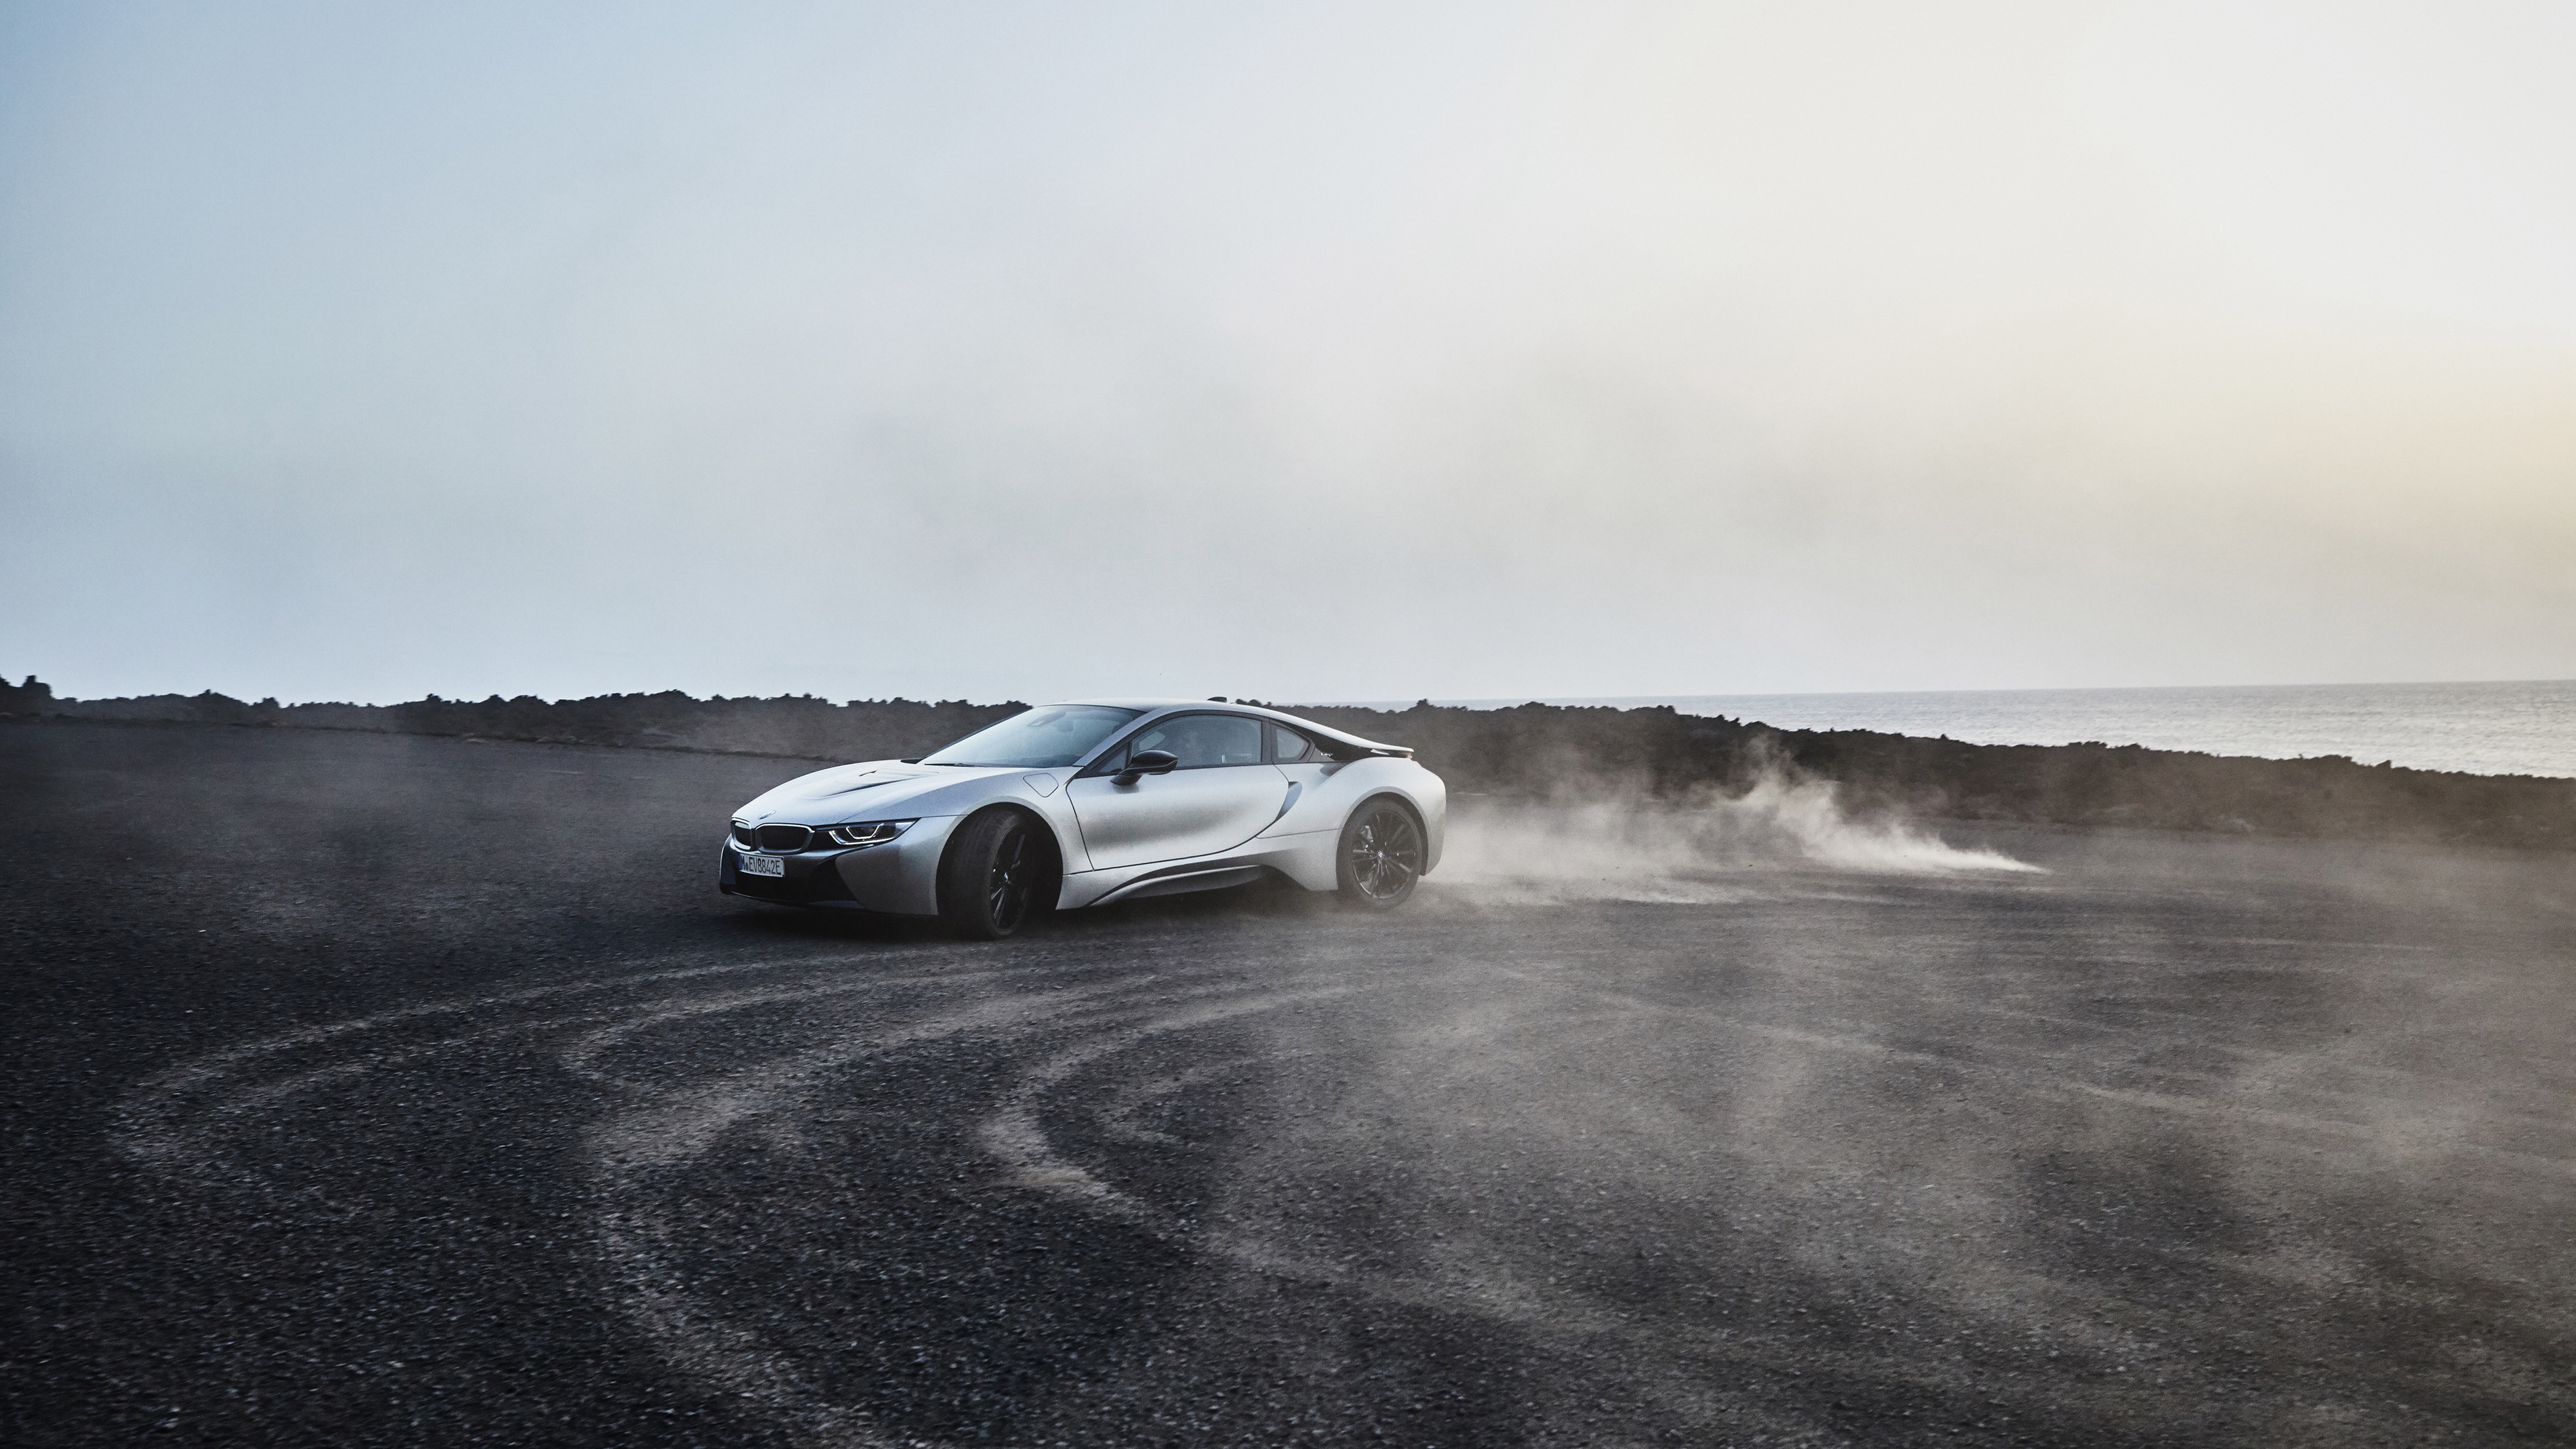 bmw i8 coupe 2018 1539108164 - BMW I8 Coupe 2018 - hd-wallpapers, cars wallpapers, bmw wallpapers, bmw i8 wallpapers, 4k-wallpapers, 2018 cars wallpapers